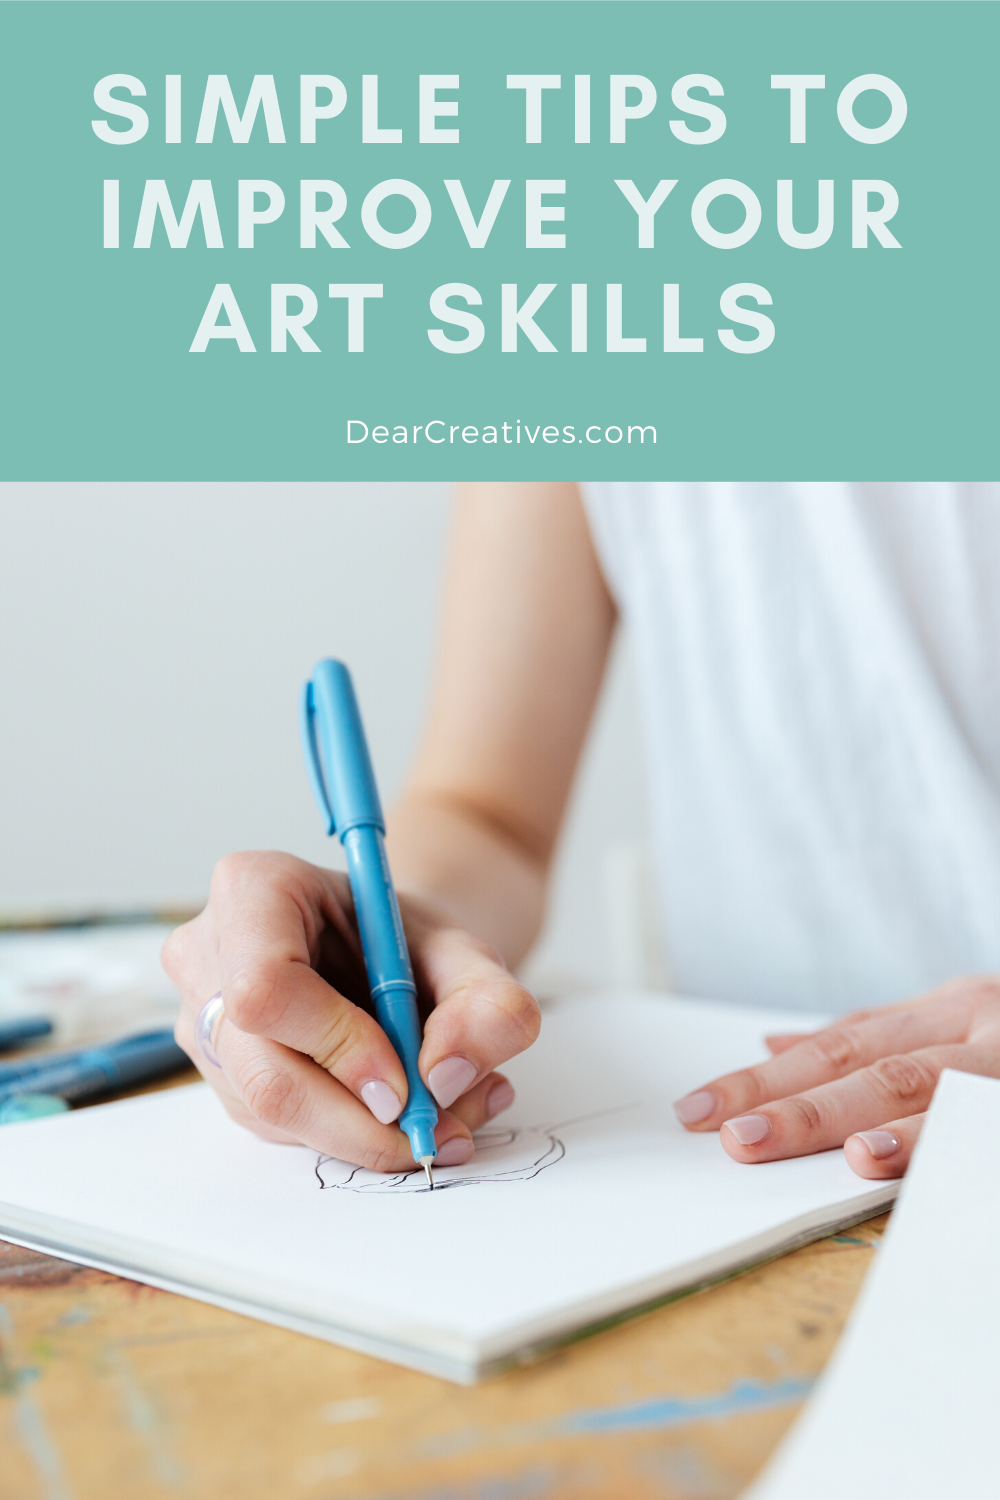 10+ Simple Tips to Improve Art Skills